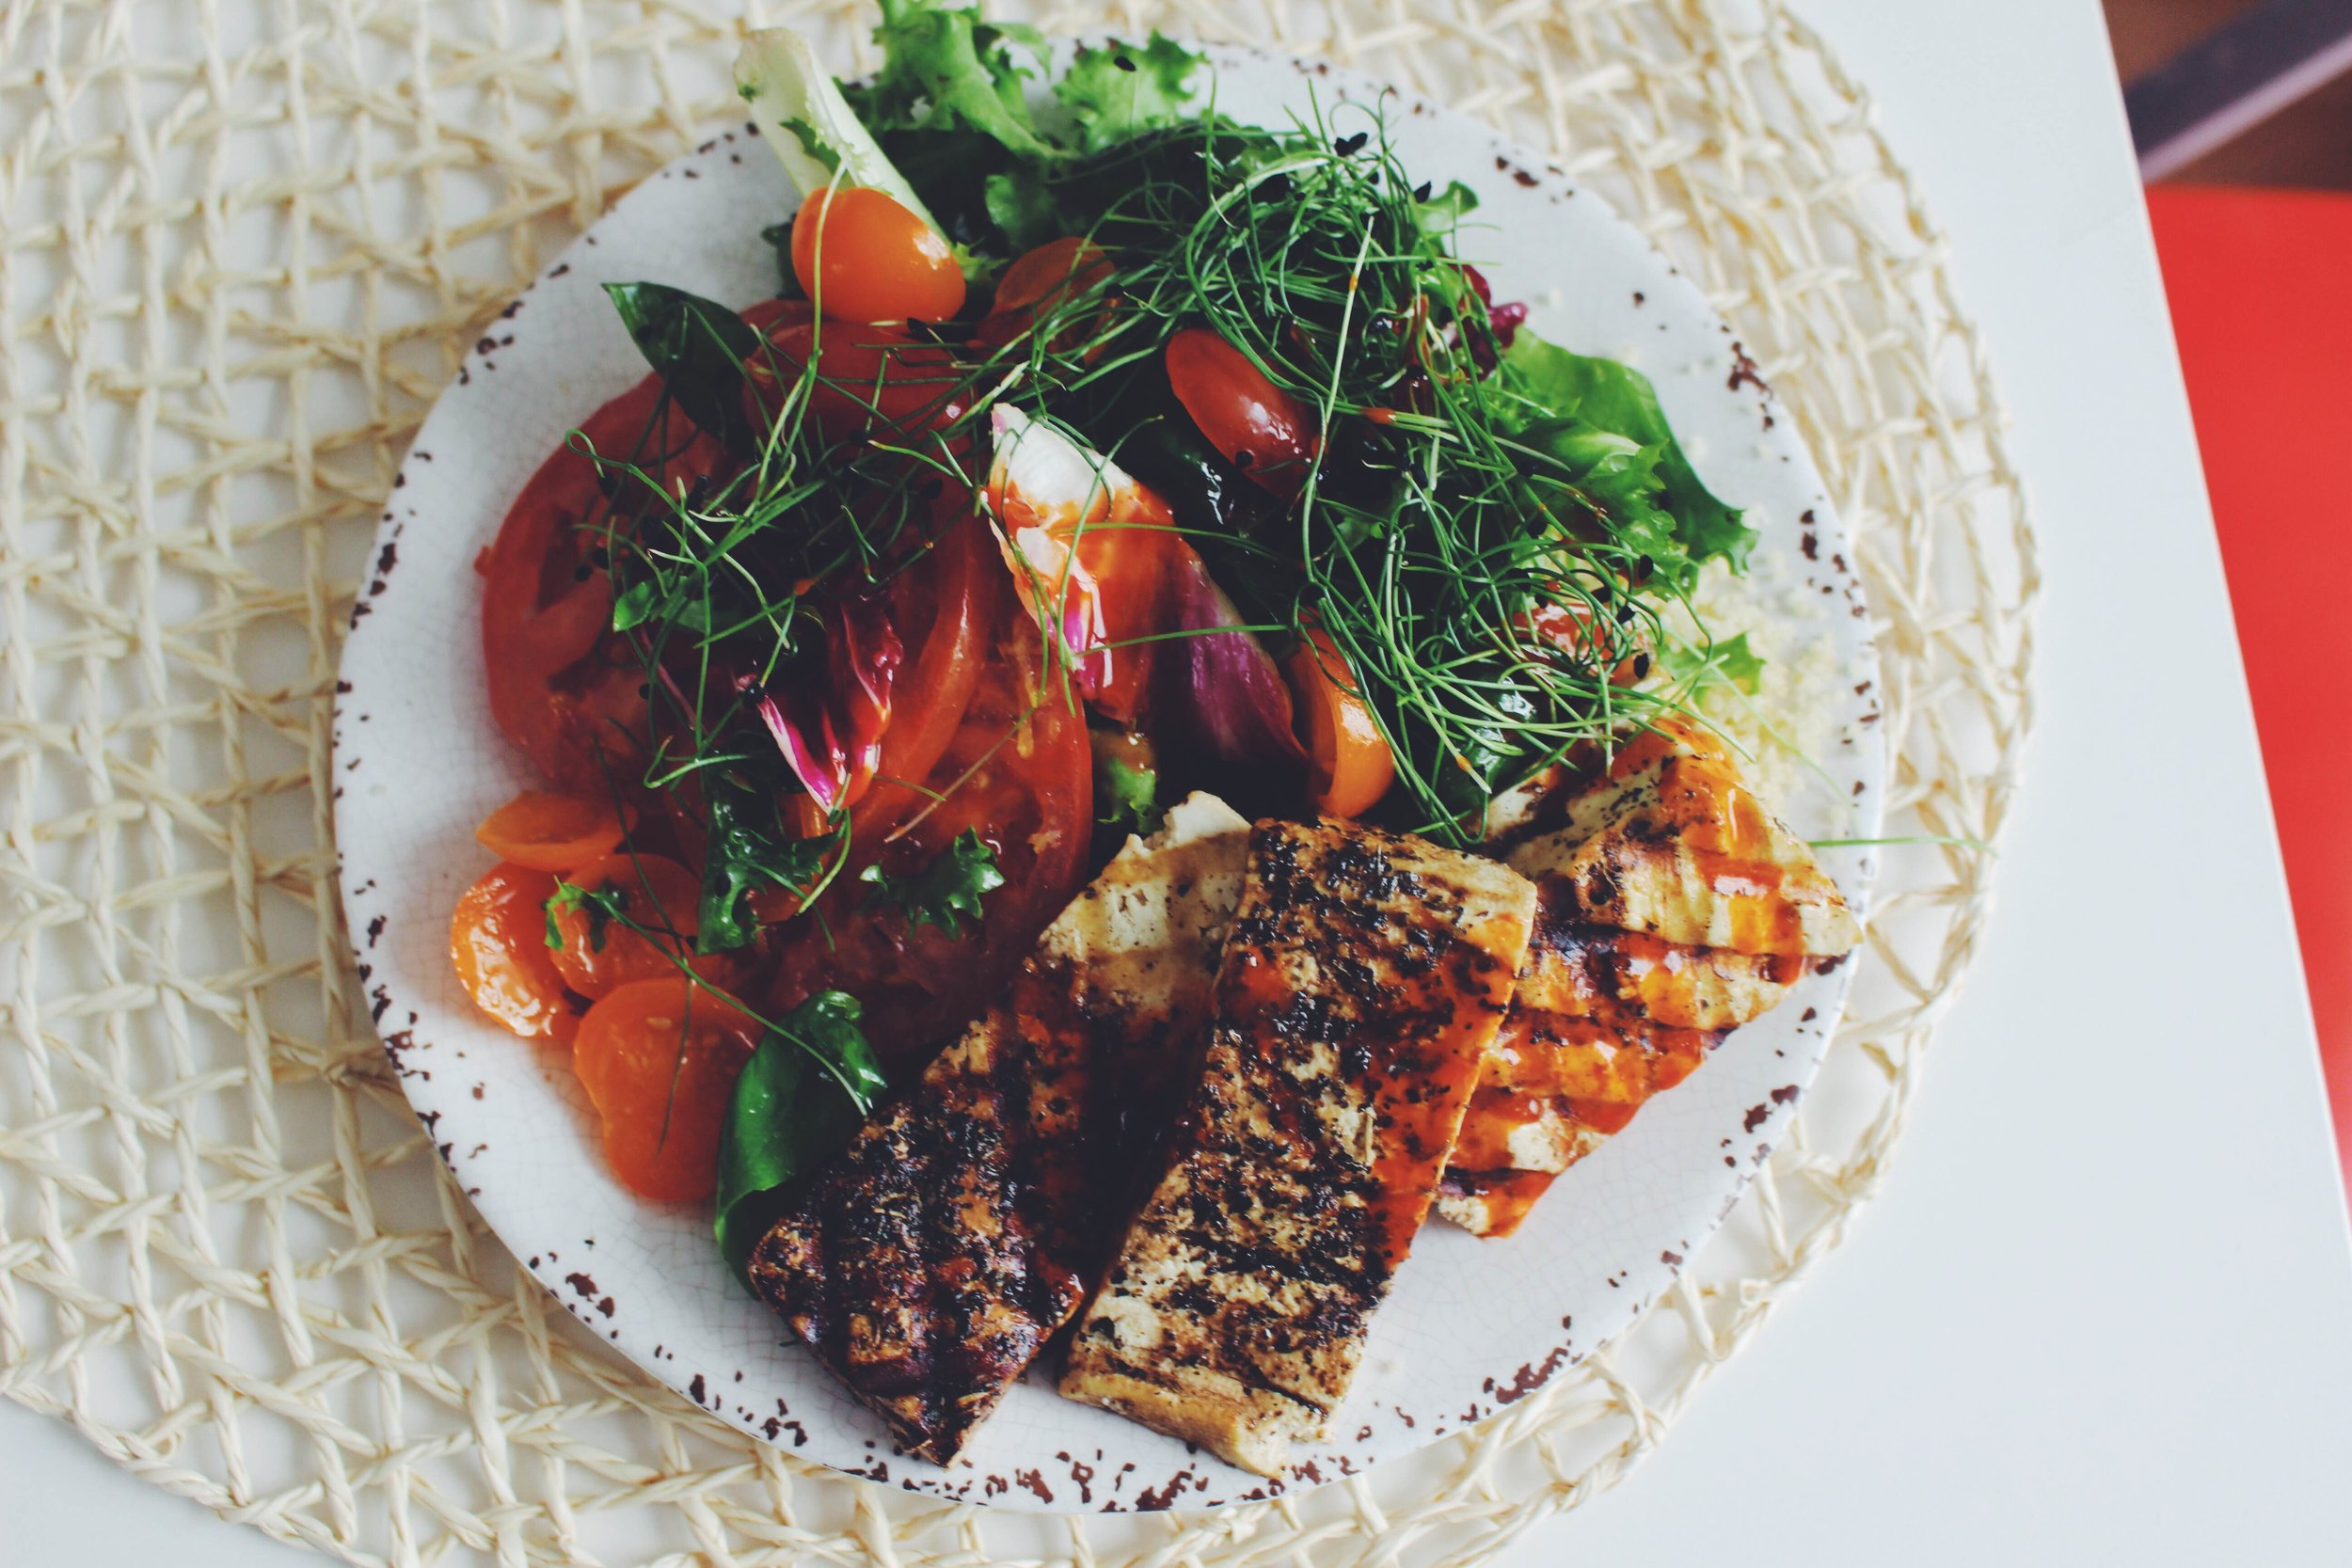 vegan halloumi recipe for summer